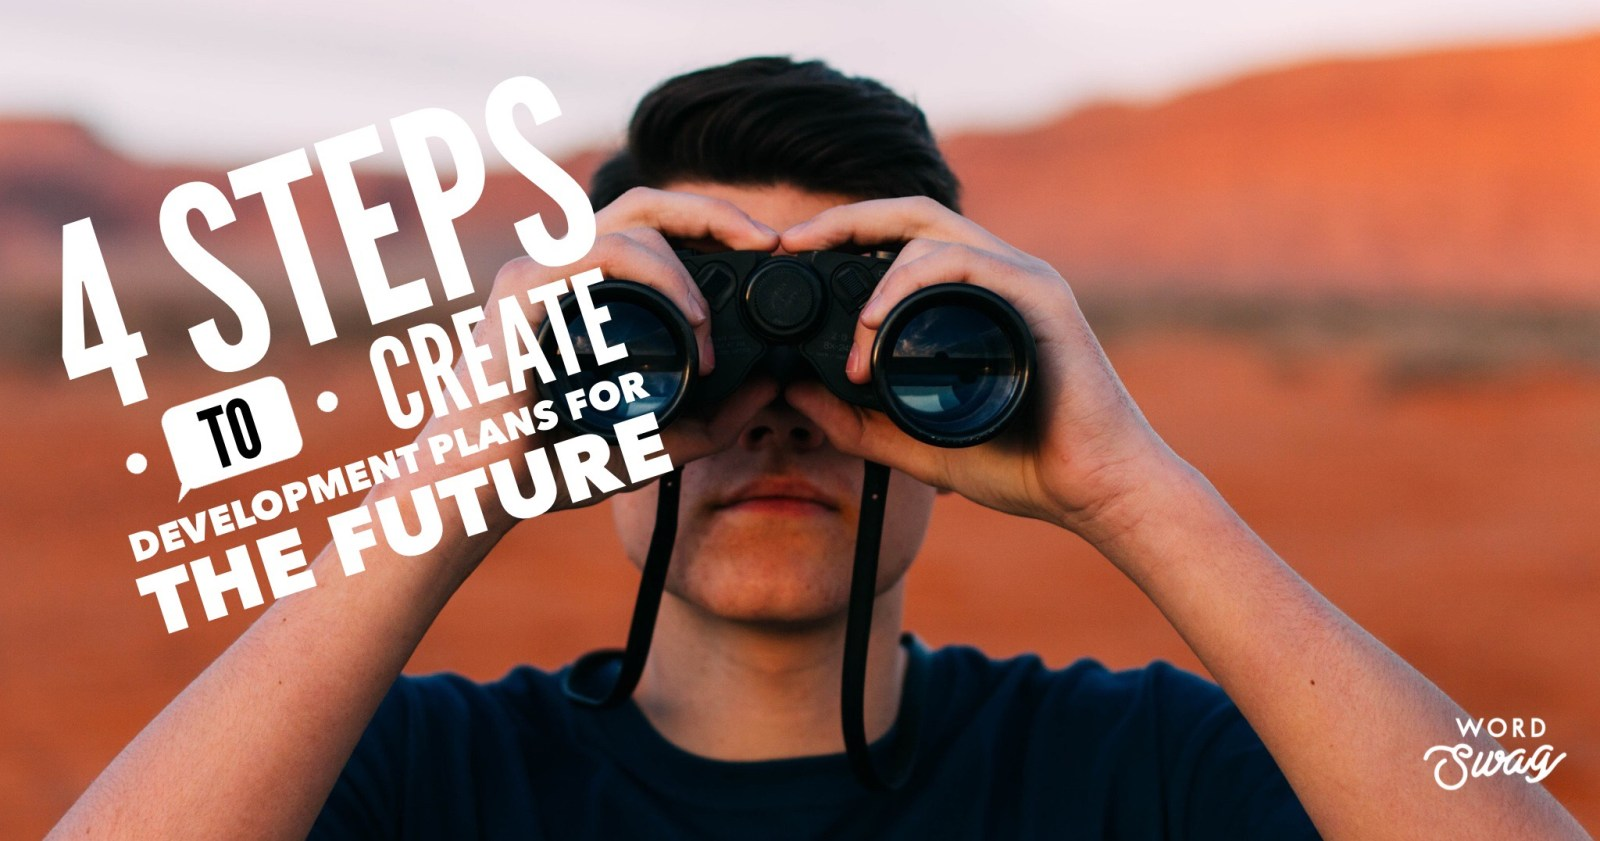 4 steps to create development plans for the future